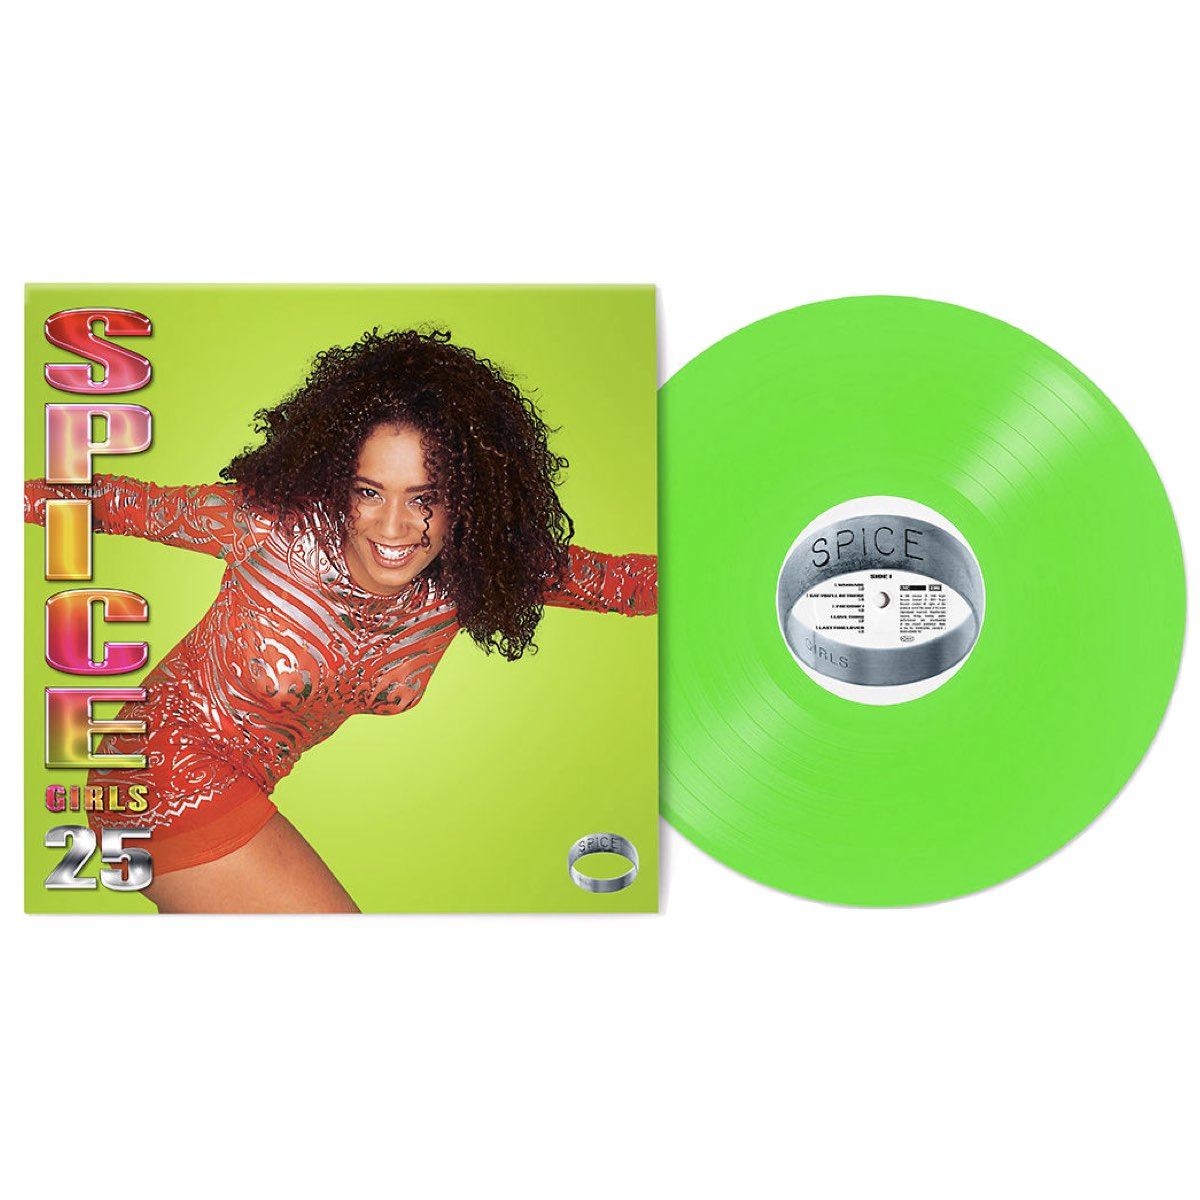 Spice Girls - Spice - 25th Anniversary [Scary Light Green Coloured - Vinyl LP]